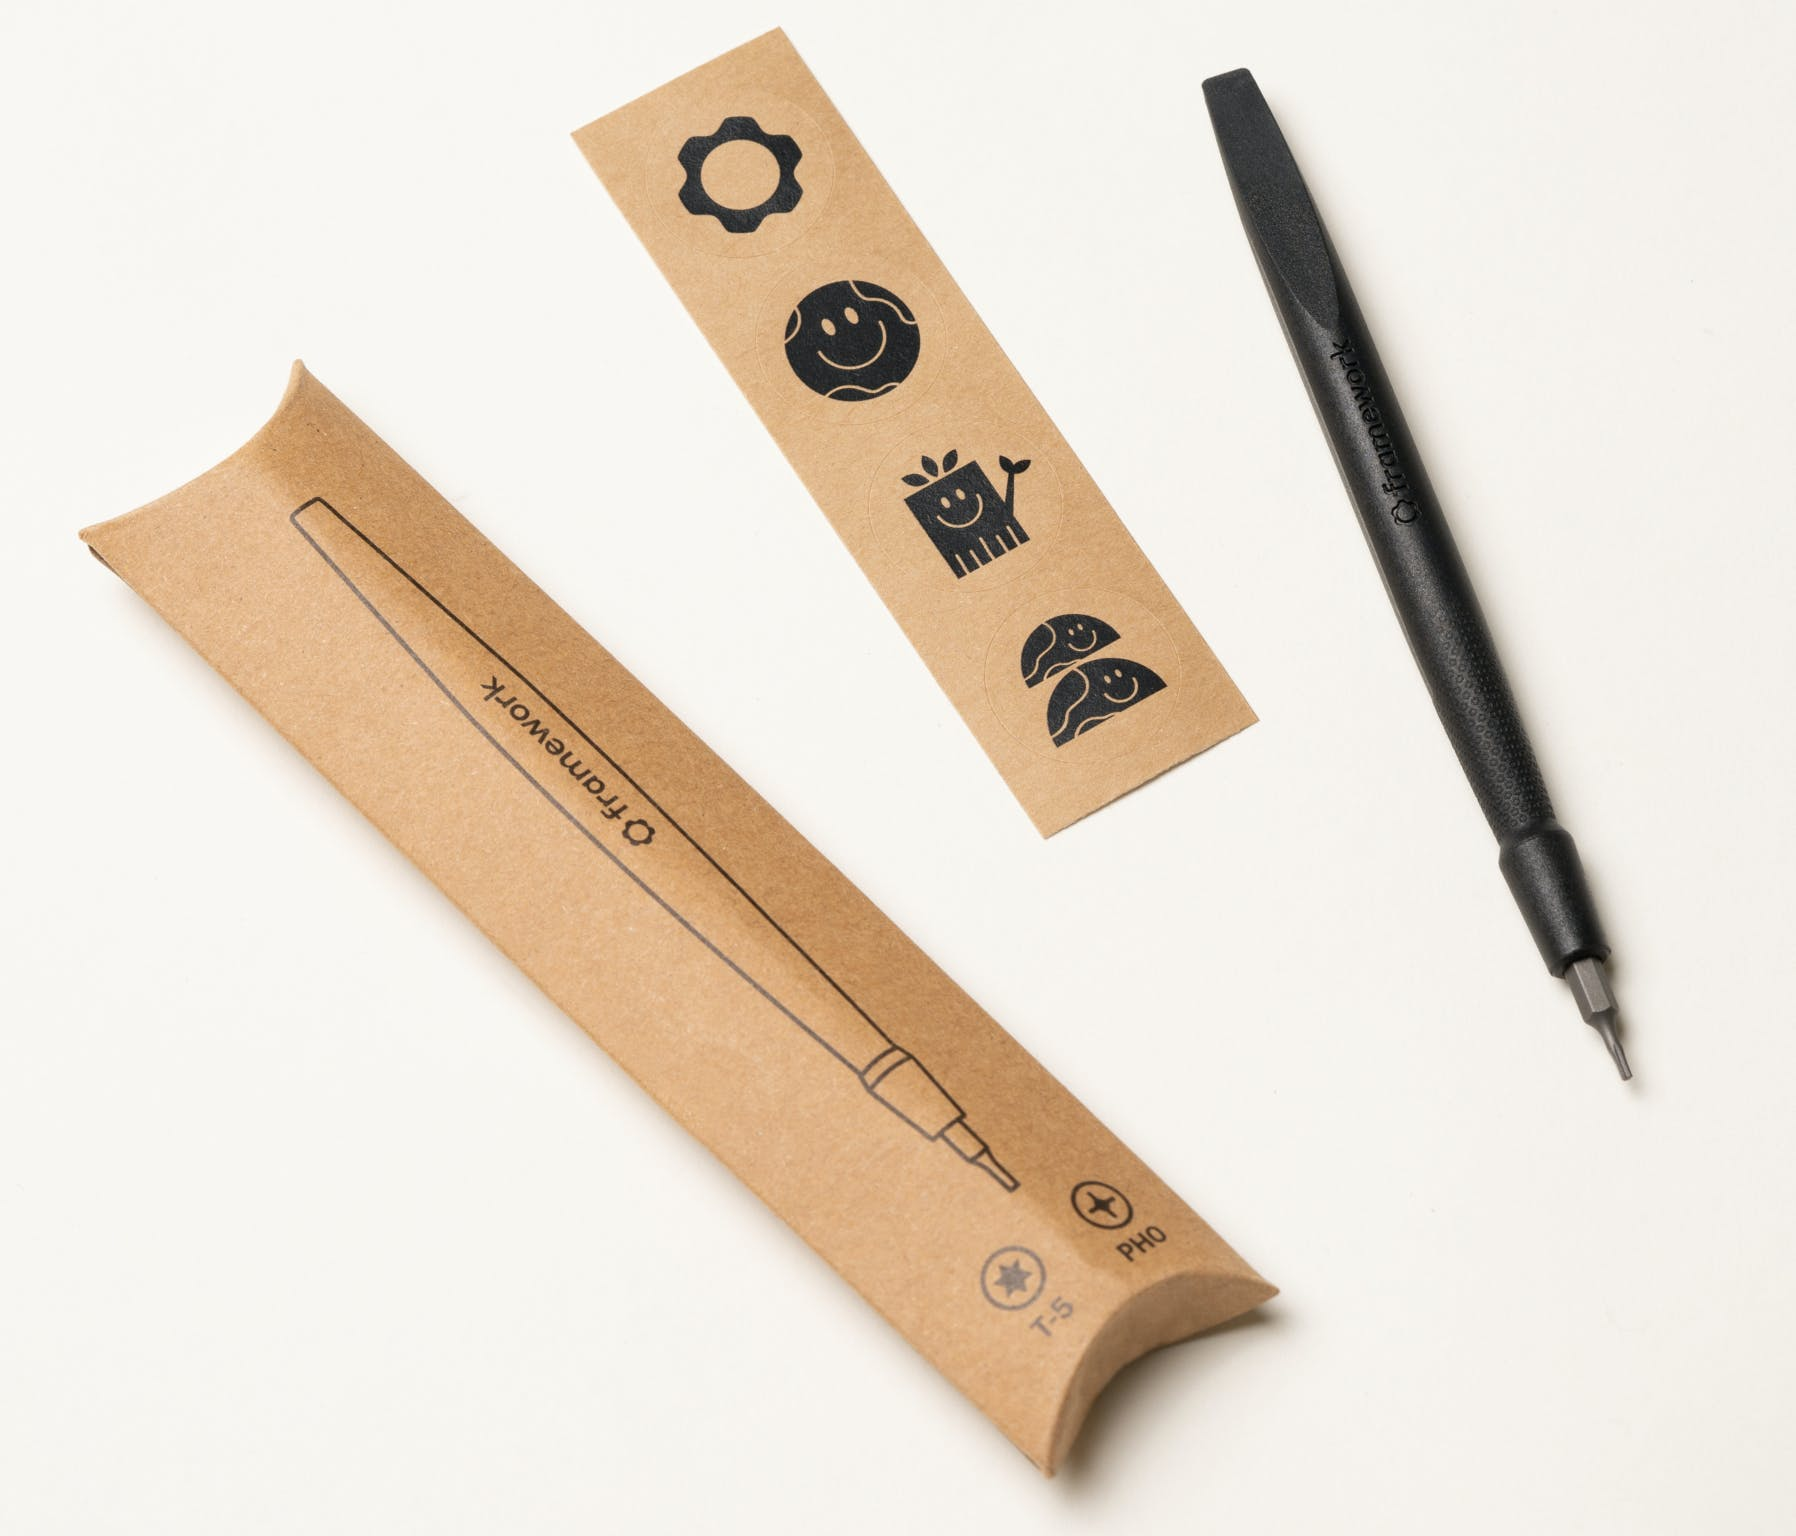 Framework screwdriver with packaging and sticker sheet